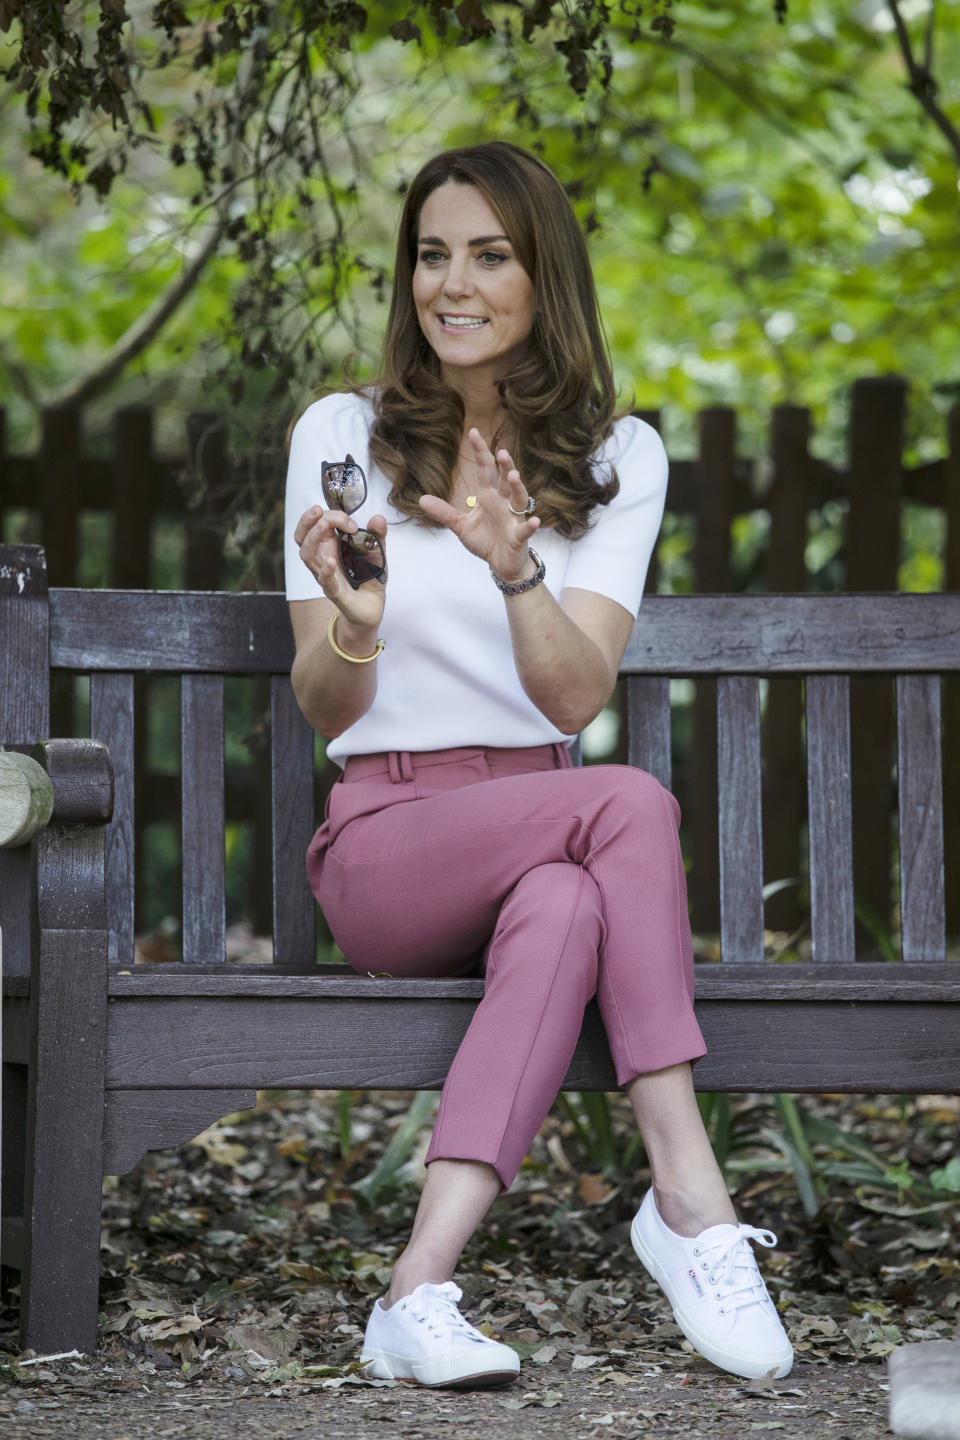 The Duchess of Cambridge wore M&S pink trousers and Superga trainers when she met families and key organisations to discuss how peer support can help boost parent wellbeing at London's Battersea Park in September 2020.  (Getty Images)